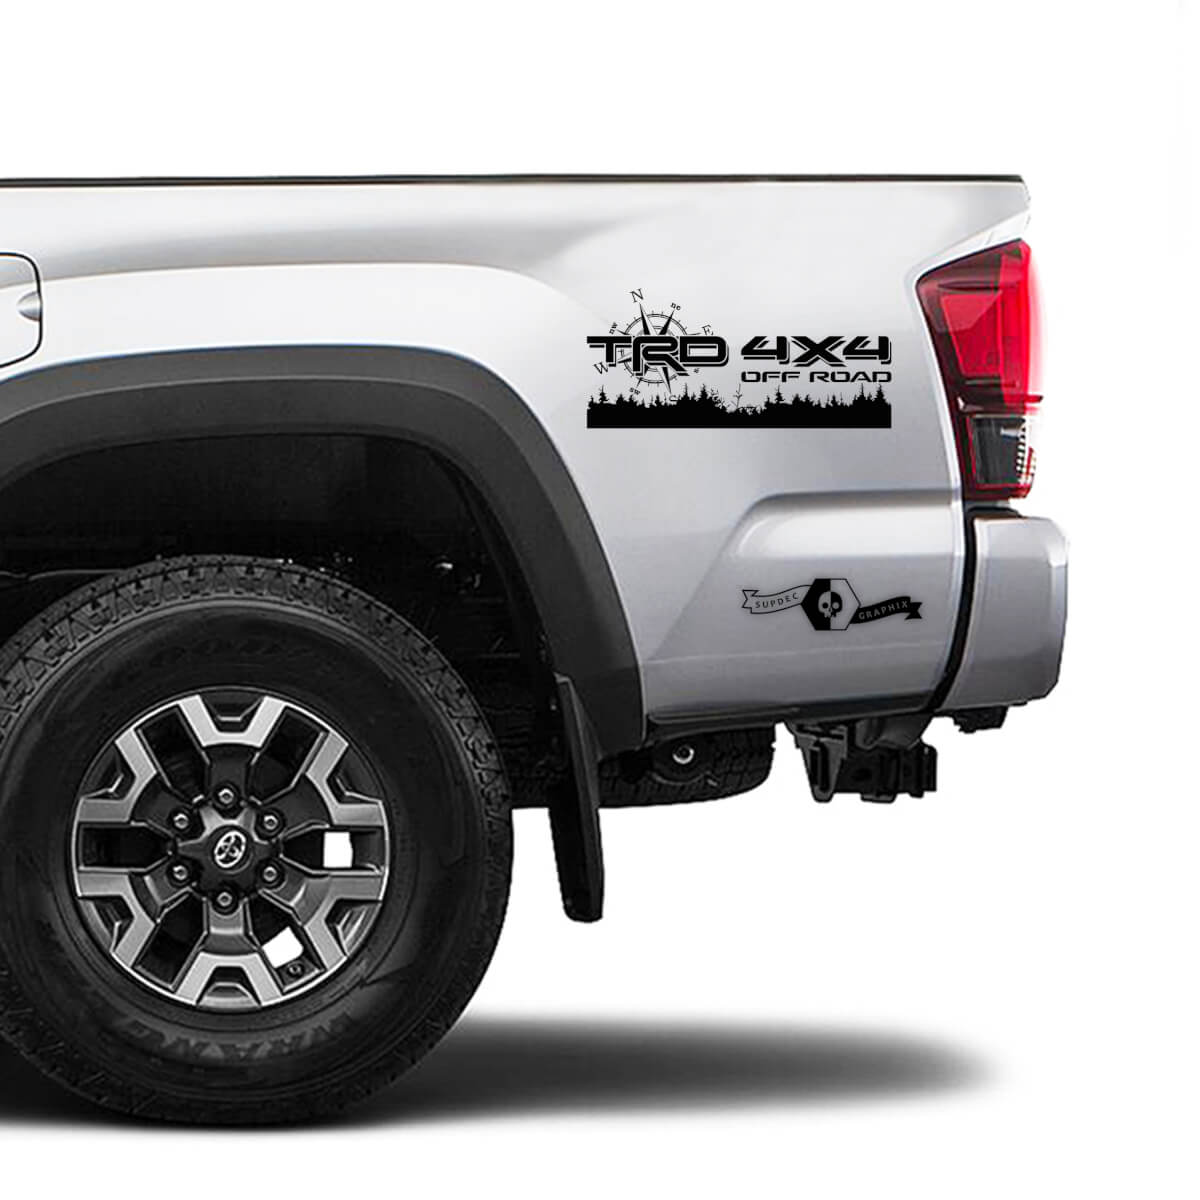 TRD 4x4 Off Road TOYOTA Field Forest Compass Rose of Wind Decals Stickers for Tacoma Tundra 4Runner Hilux side